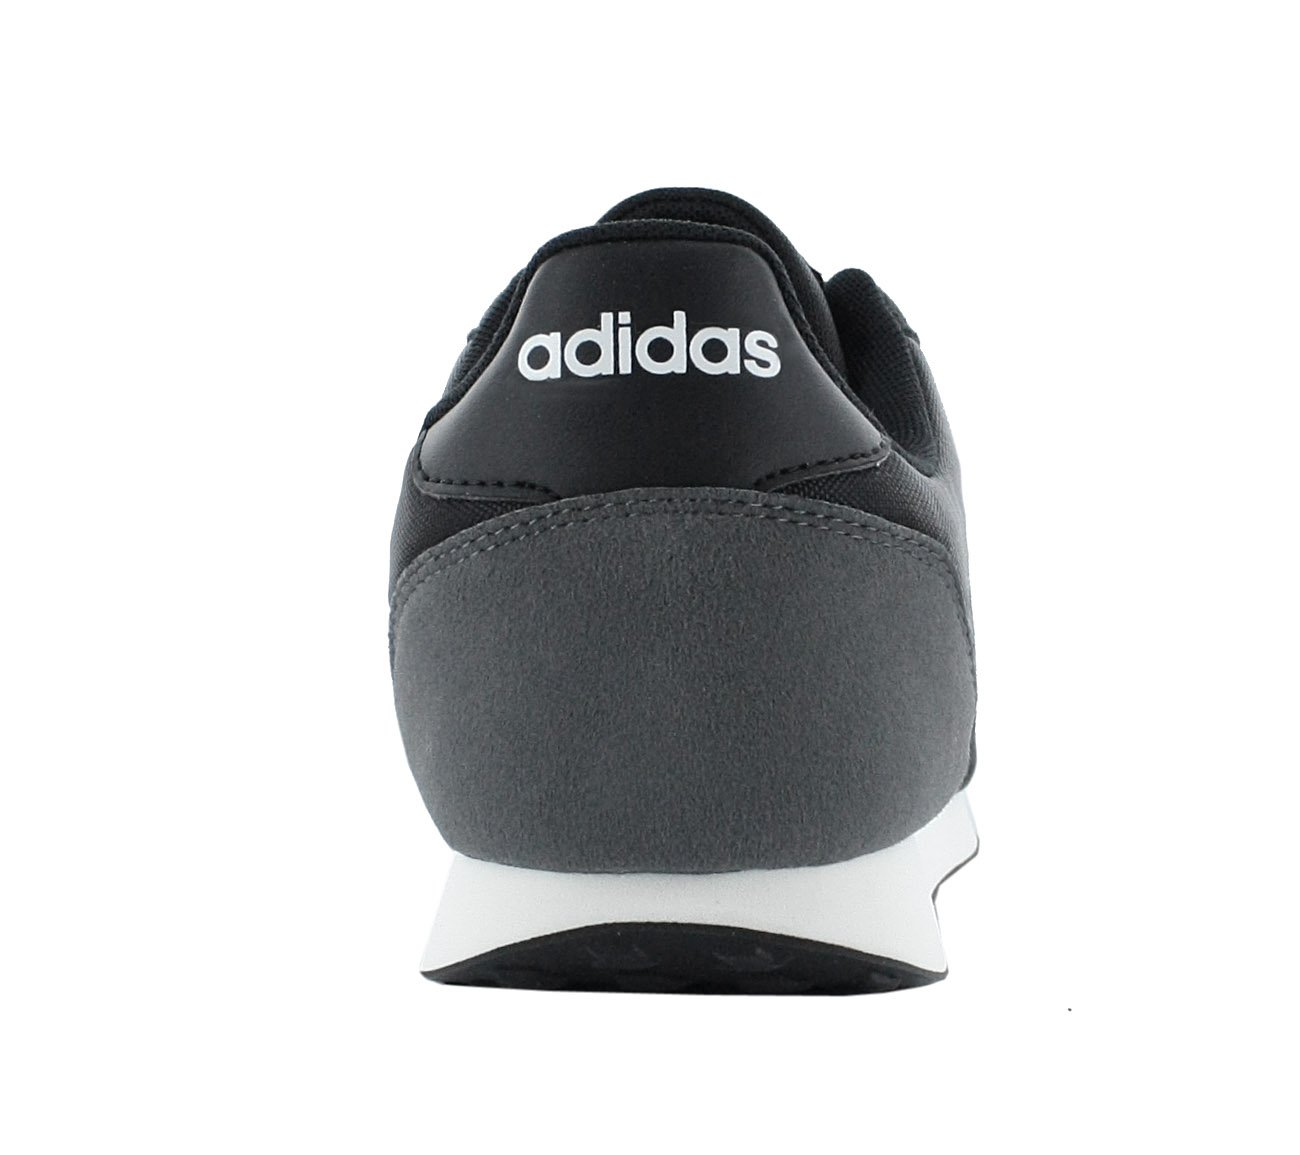 NEW adidas adidas NEW V Racer BC0106 Mens Shoes Trainers Sneakers SALE e74f79